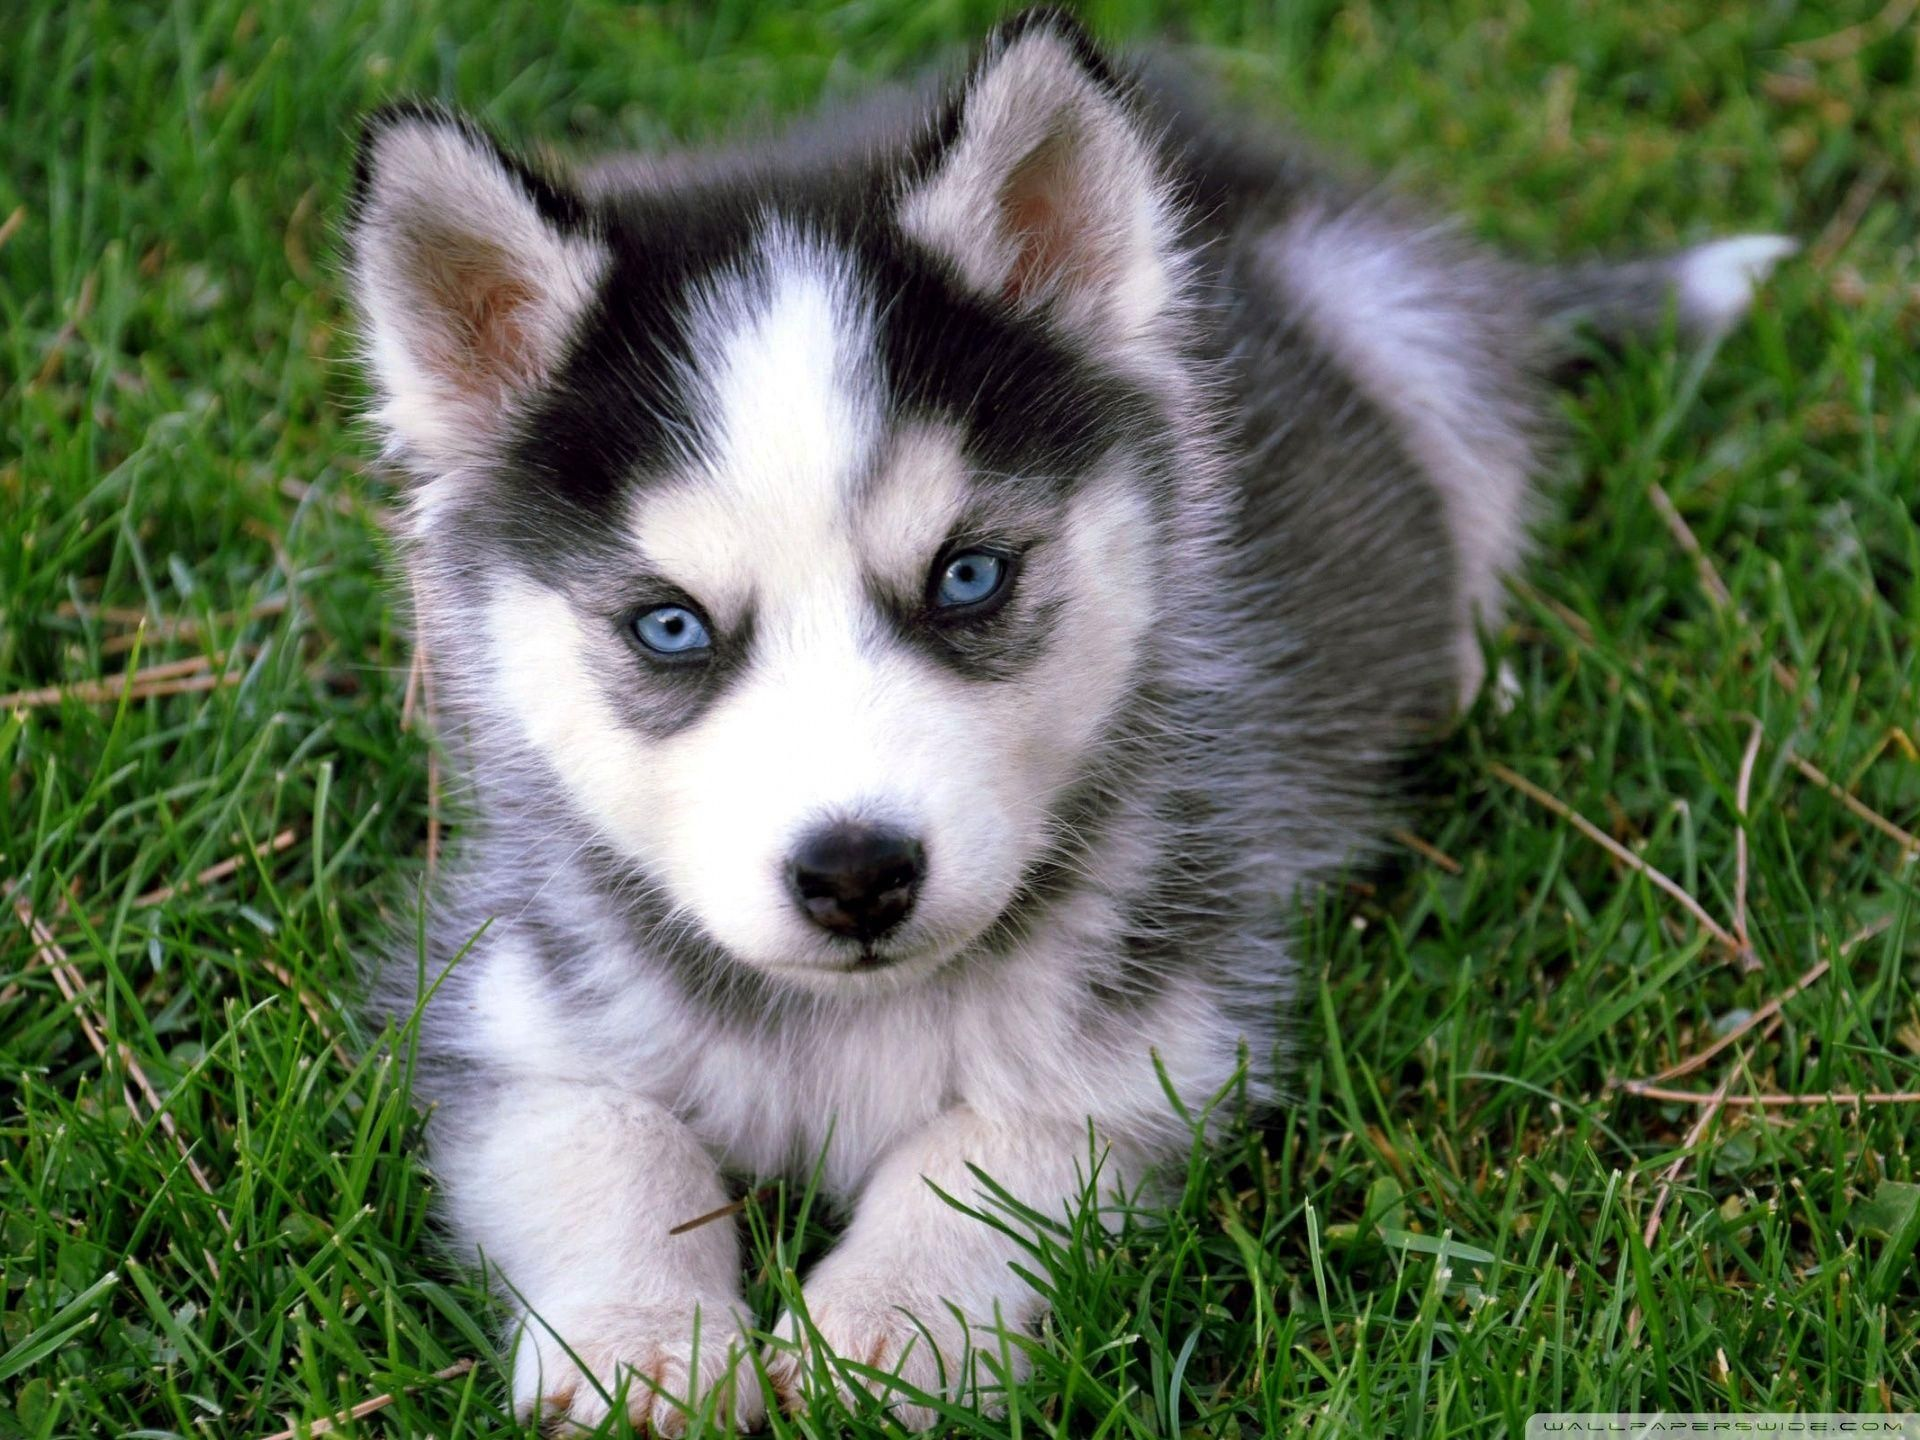 Cute Husky Puppy Wallpaper In 2020 Cute Husky Puppies Baby Dogs